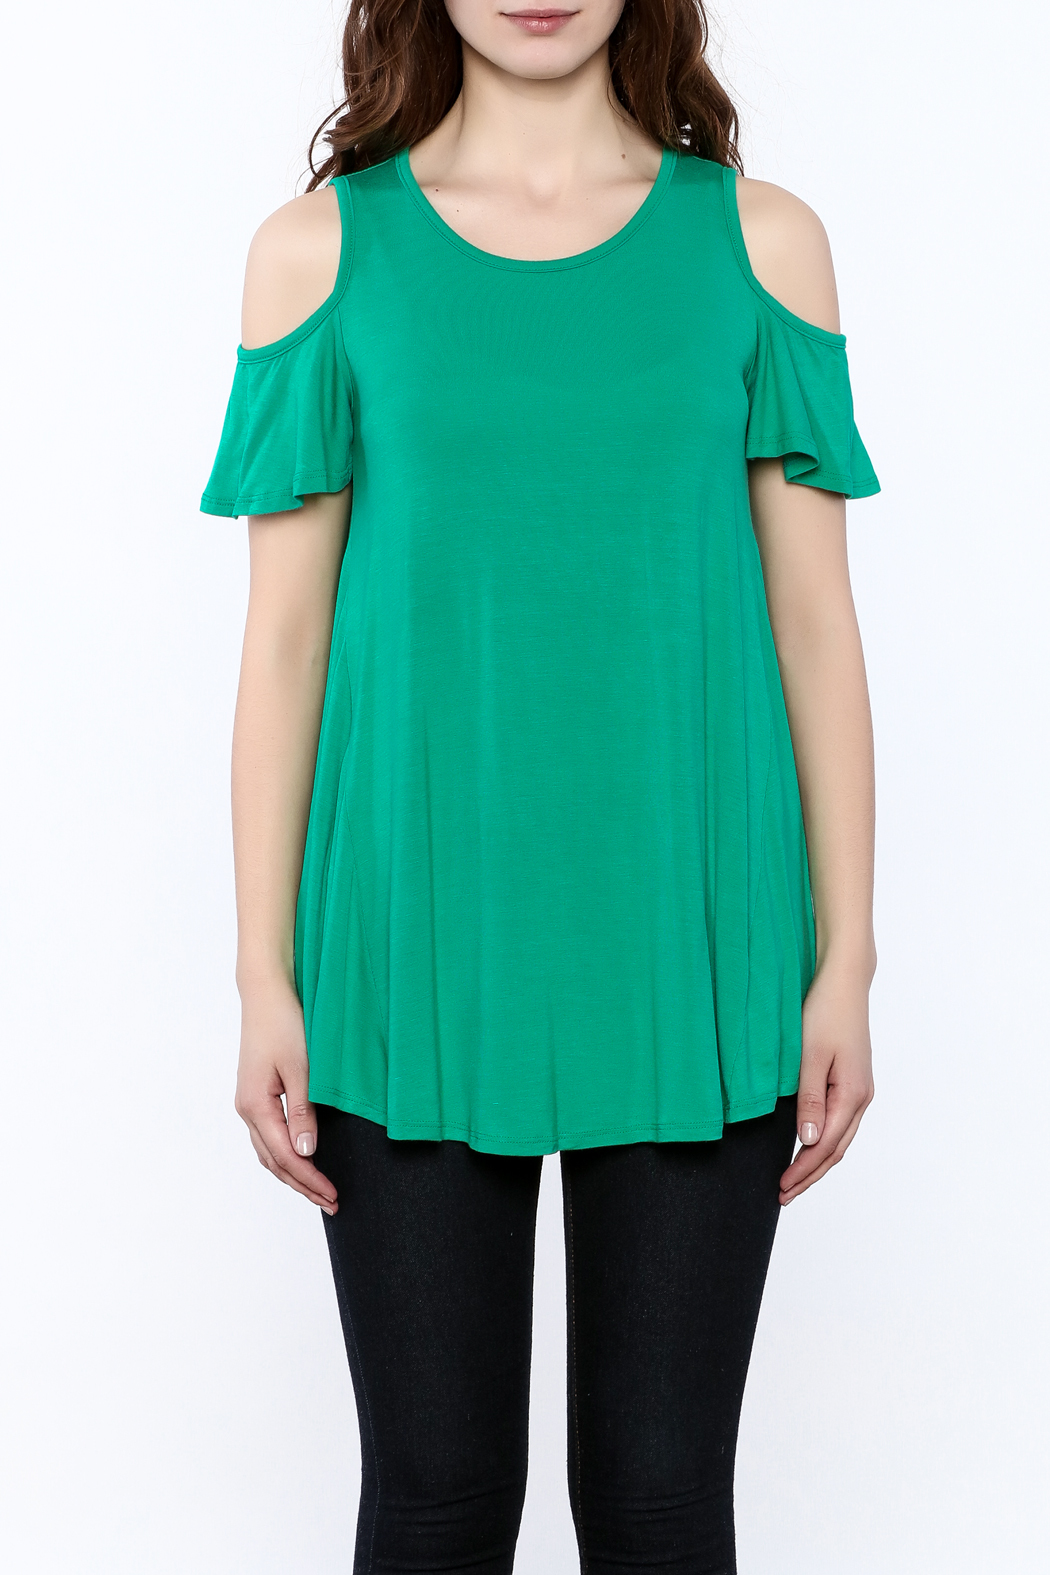 Reborn J Green Tunic Top - Side Cropped Image